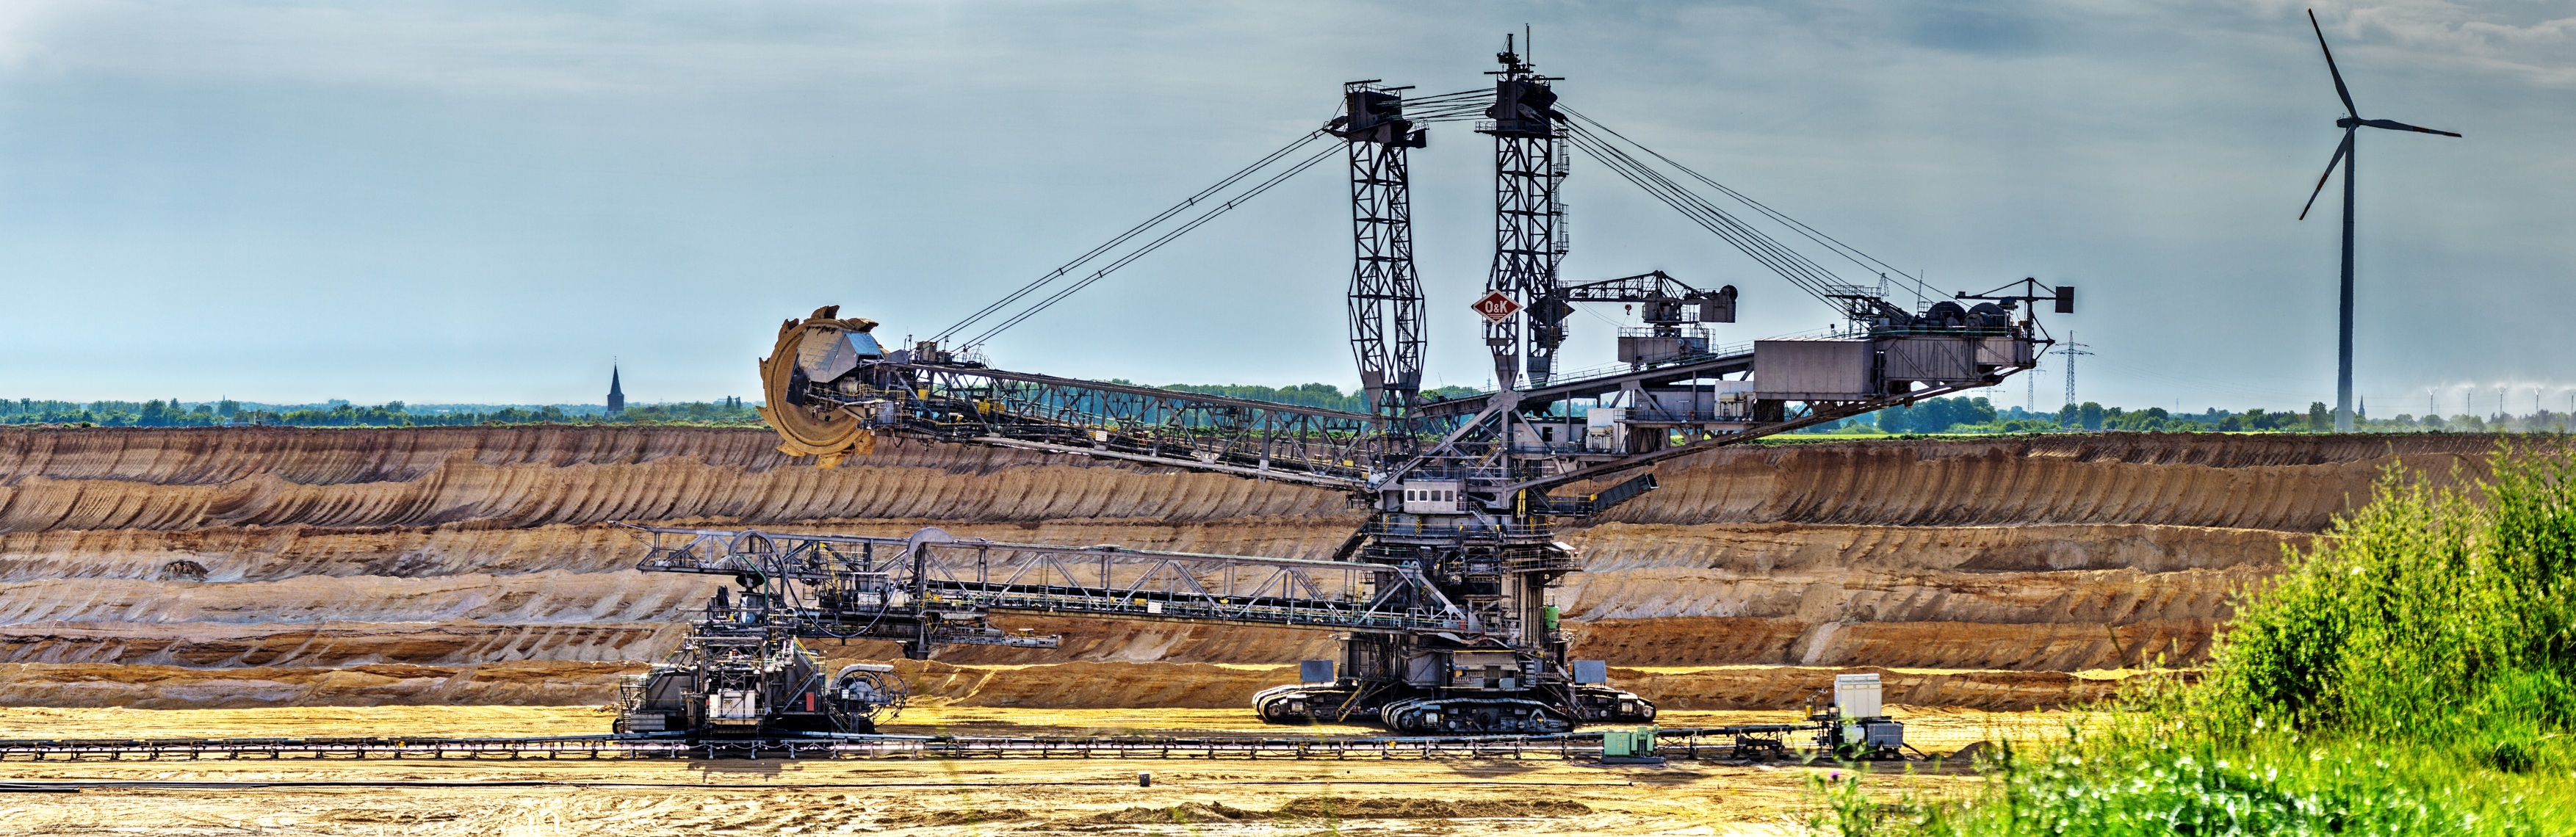 download analyzing the social